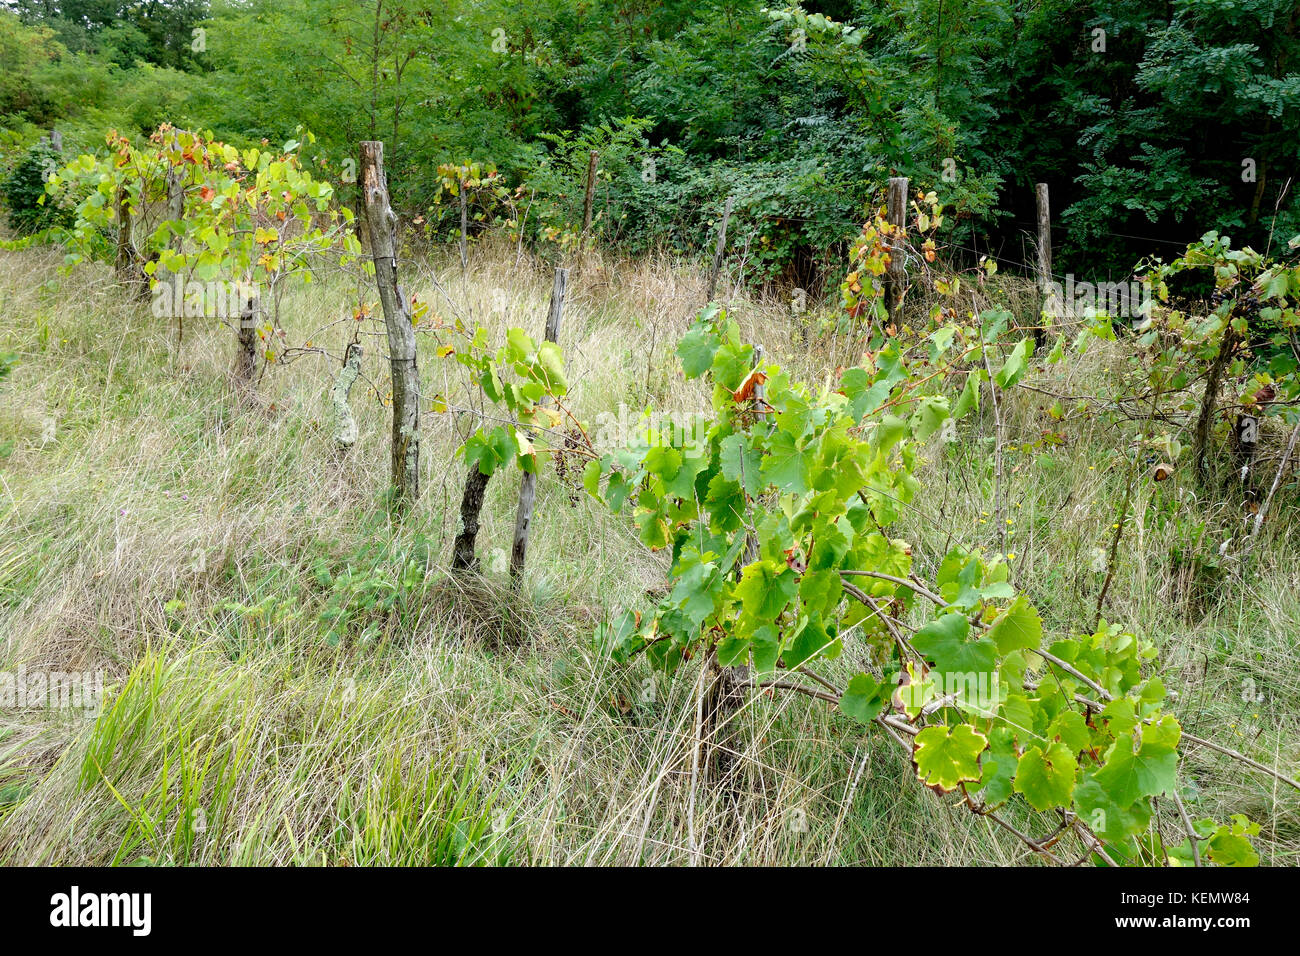 Neglected and abandoned vineyard overgrown in shrub and grass. - Stock Image